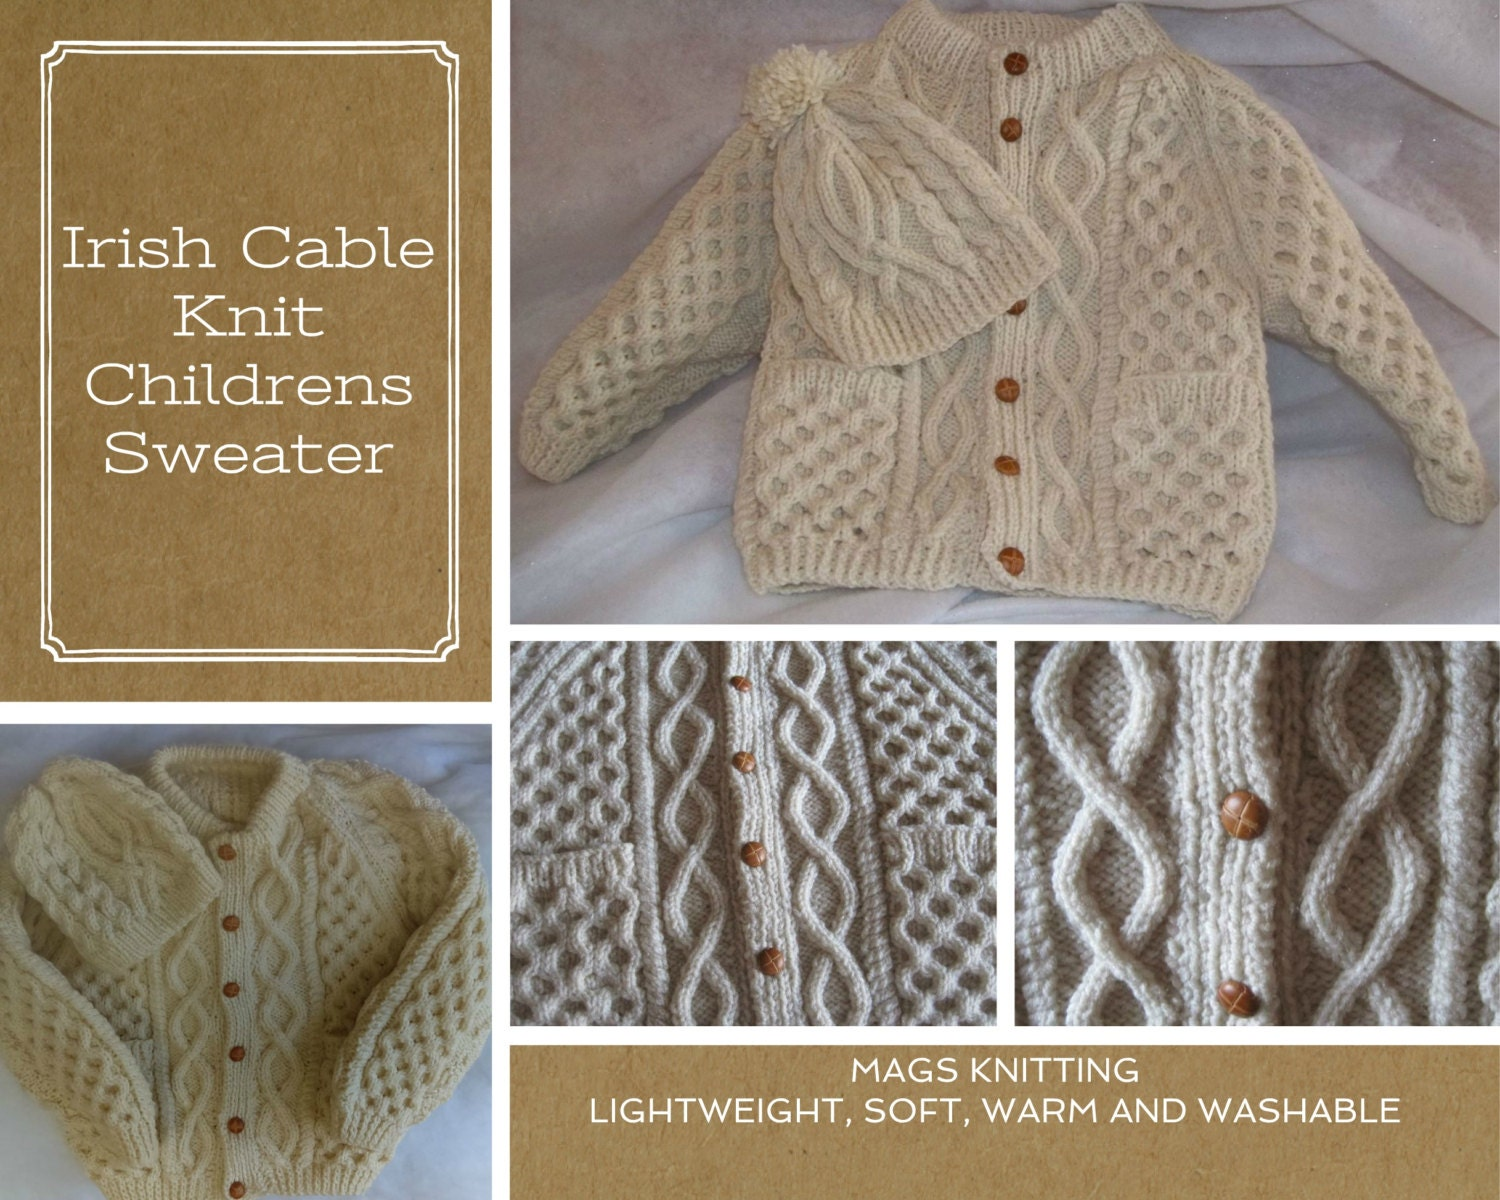 Irish Cable Knit Sweater Patterns : Irish Cable Knit Style Childrens Sweater by MAGSKNITTING on Etsy